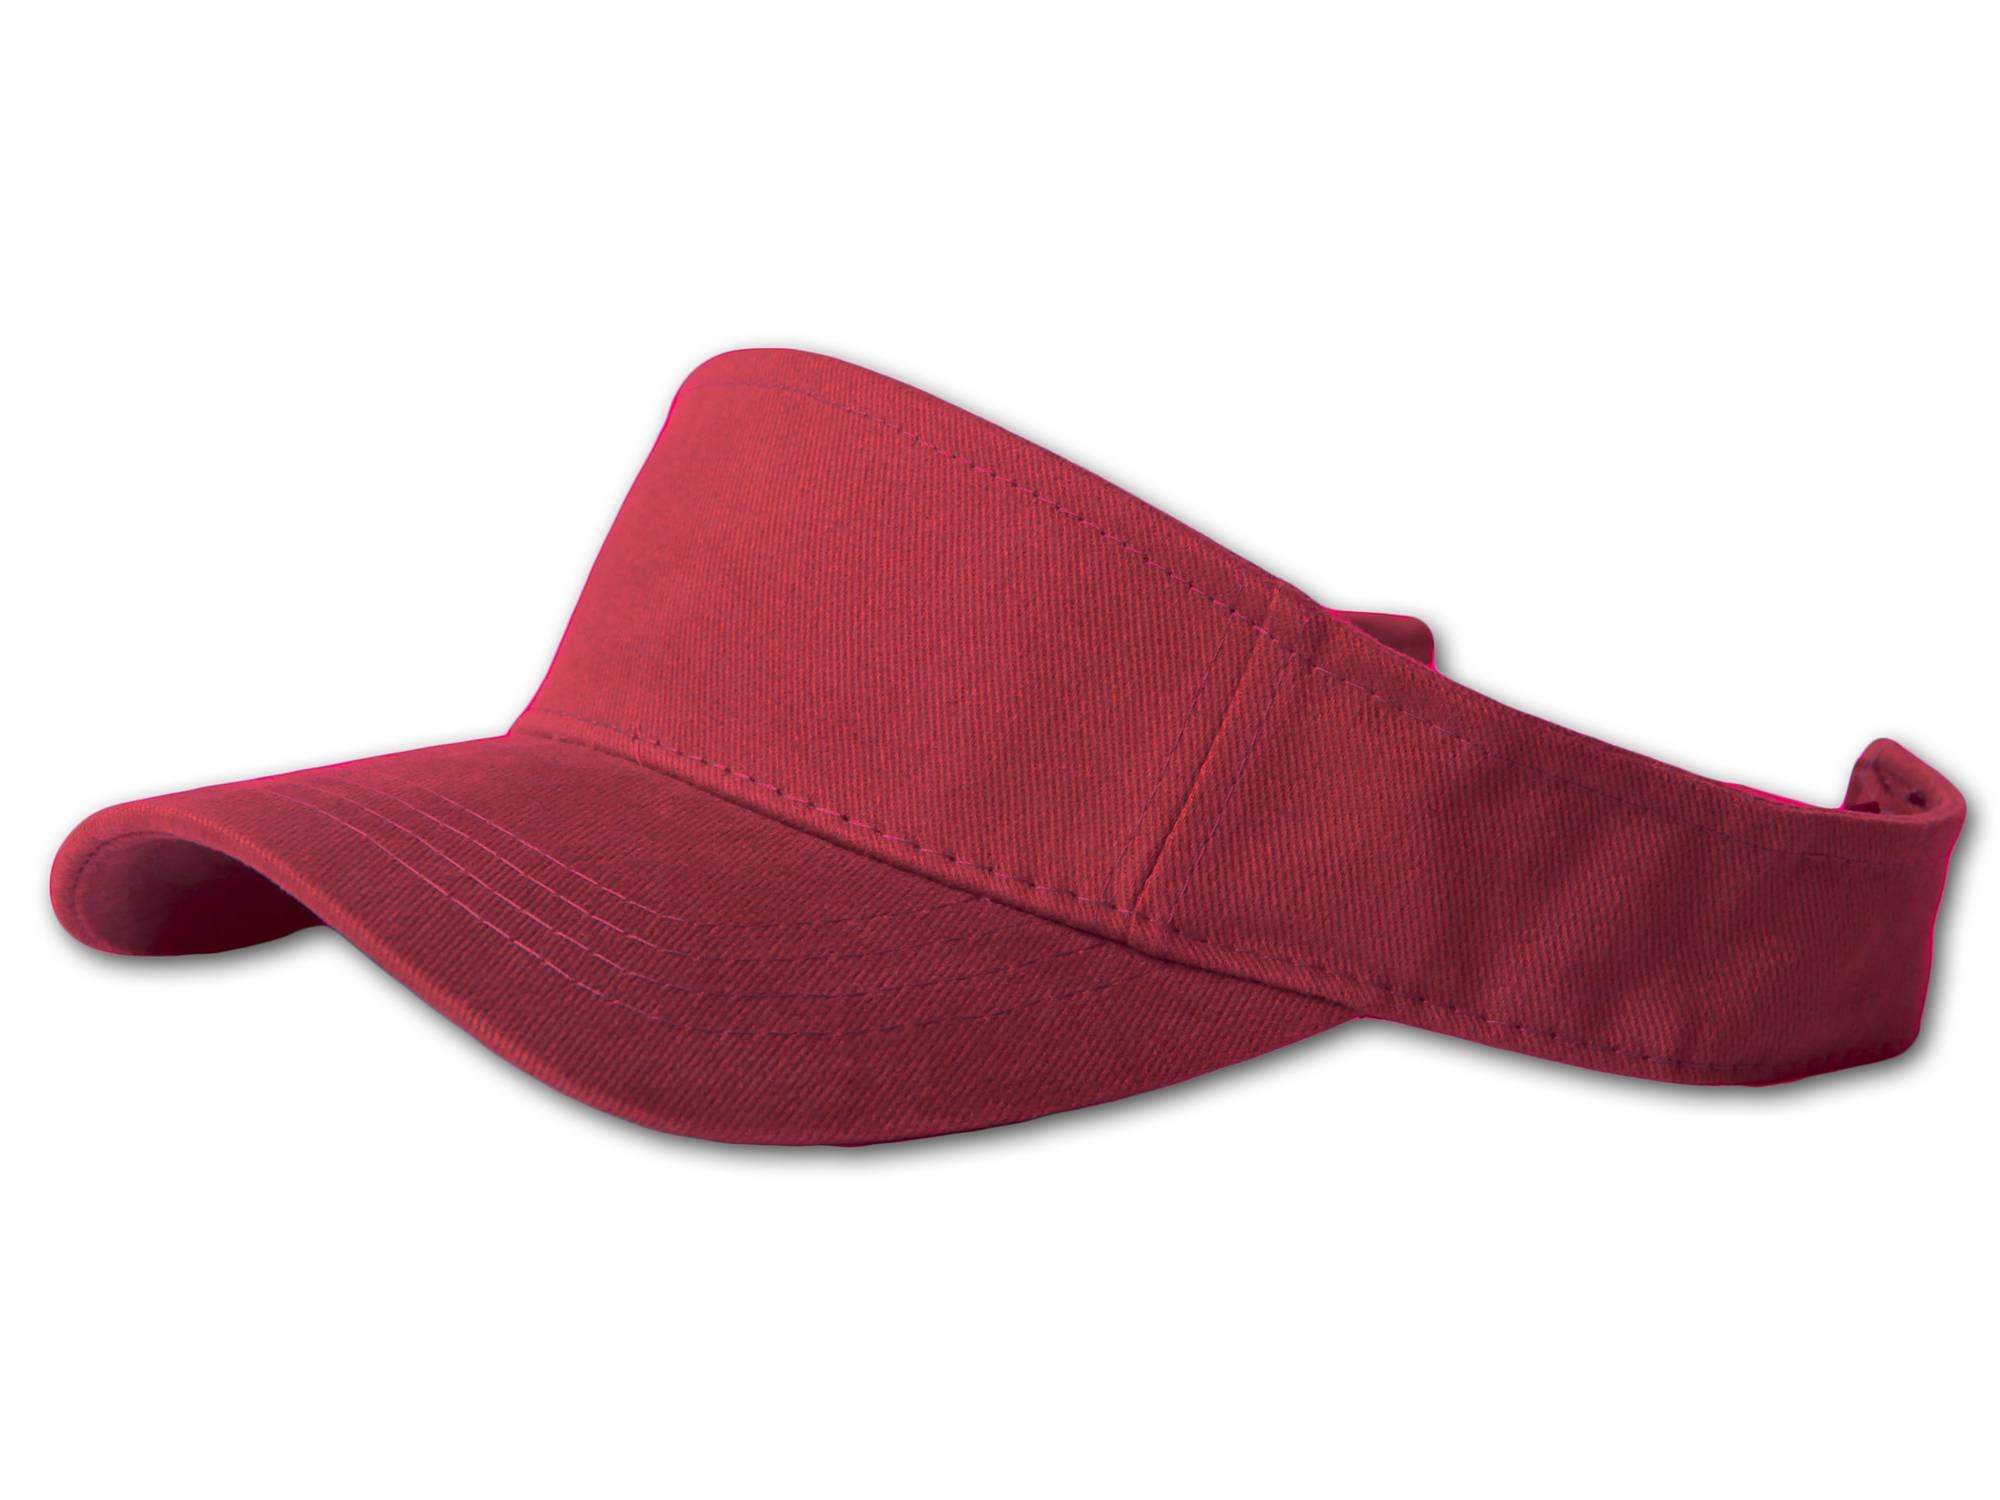 12 Lot (One Color) Visor Caps- Maroon by Magic